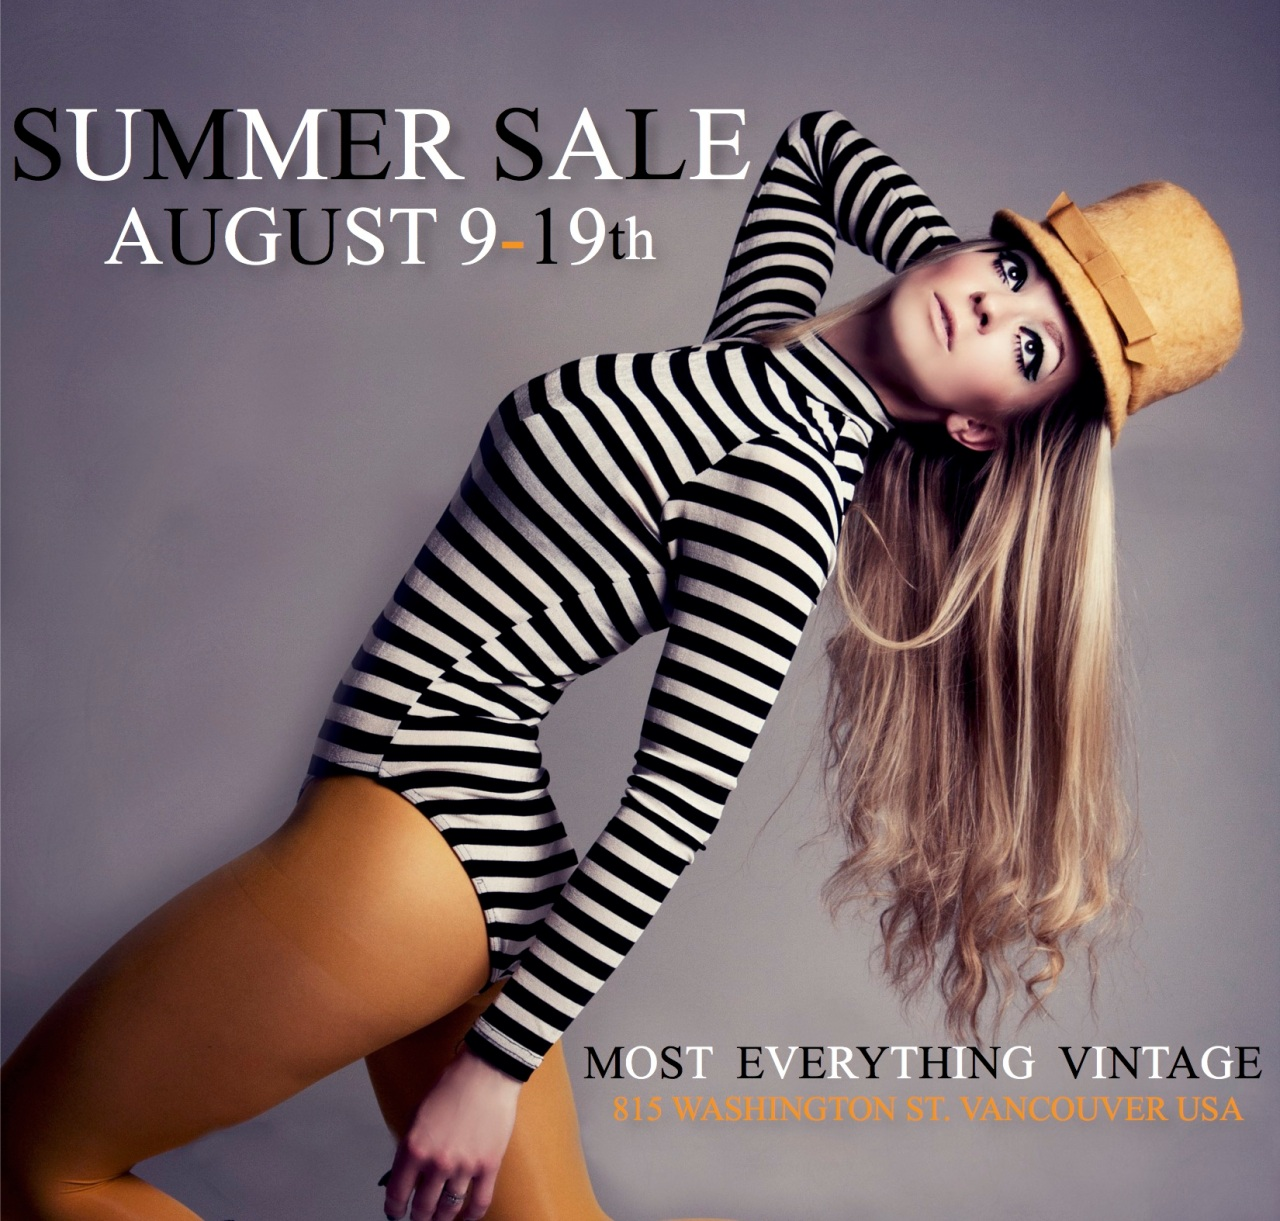 Summer sale '17 copy